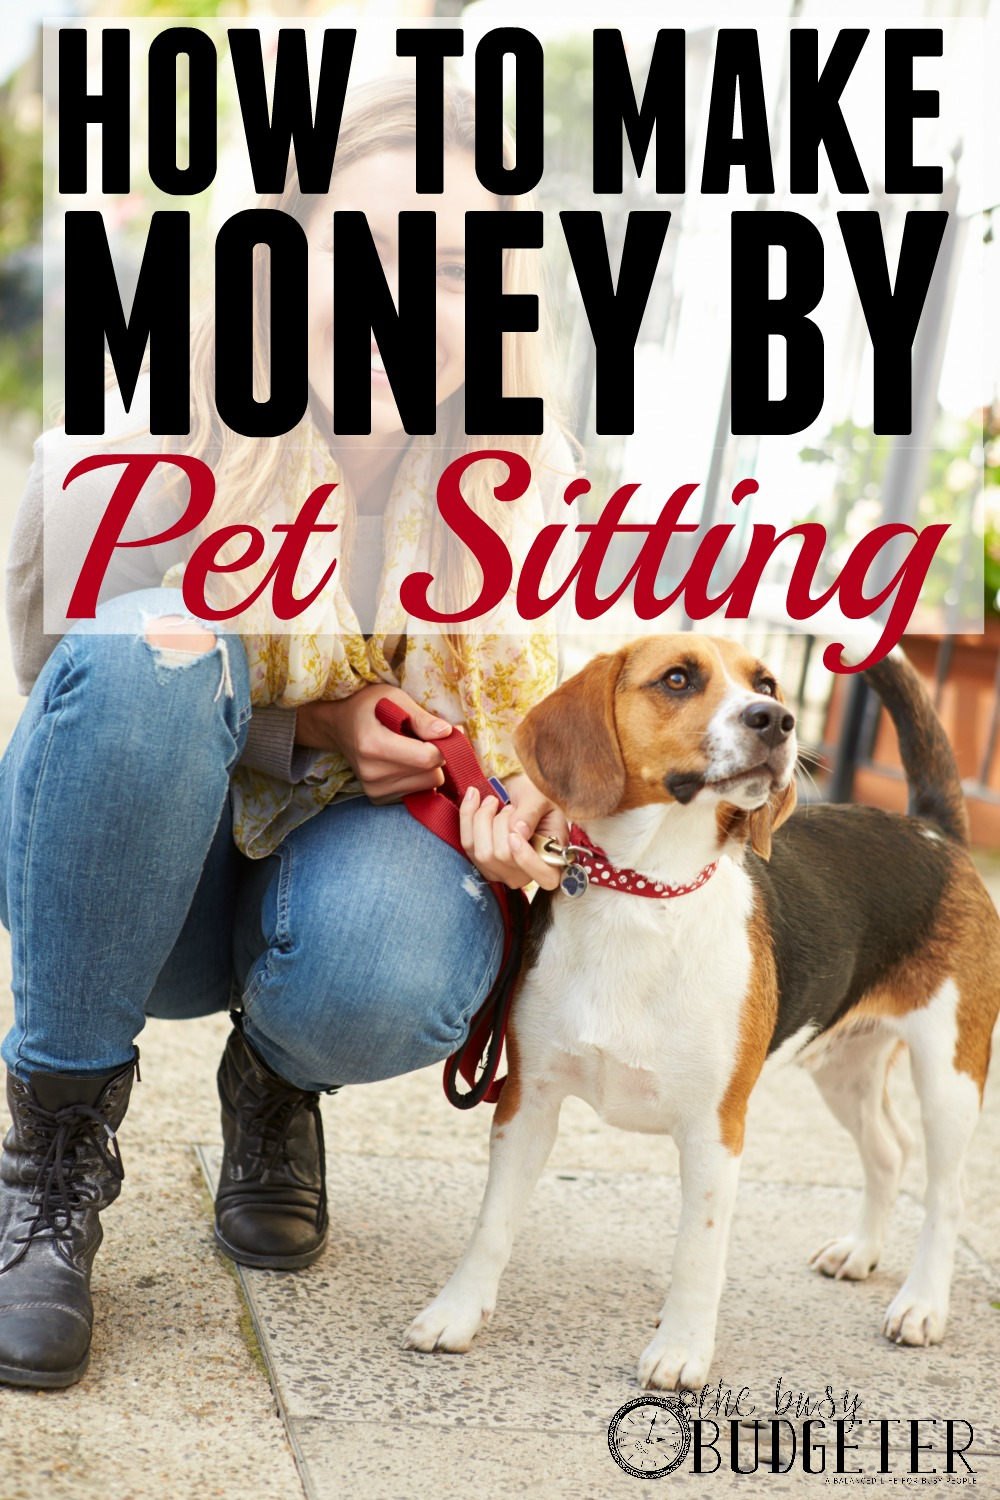 Make Money Pet Sitting: This is a great idea! I can't believe I didn't think of it myself considering how much I love pets. I'm totally asking my neighbors if they need a dog-sitter anytime soon!